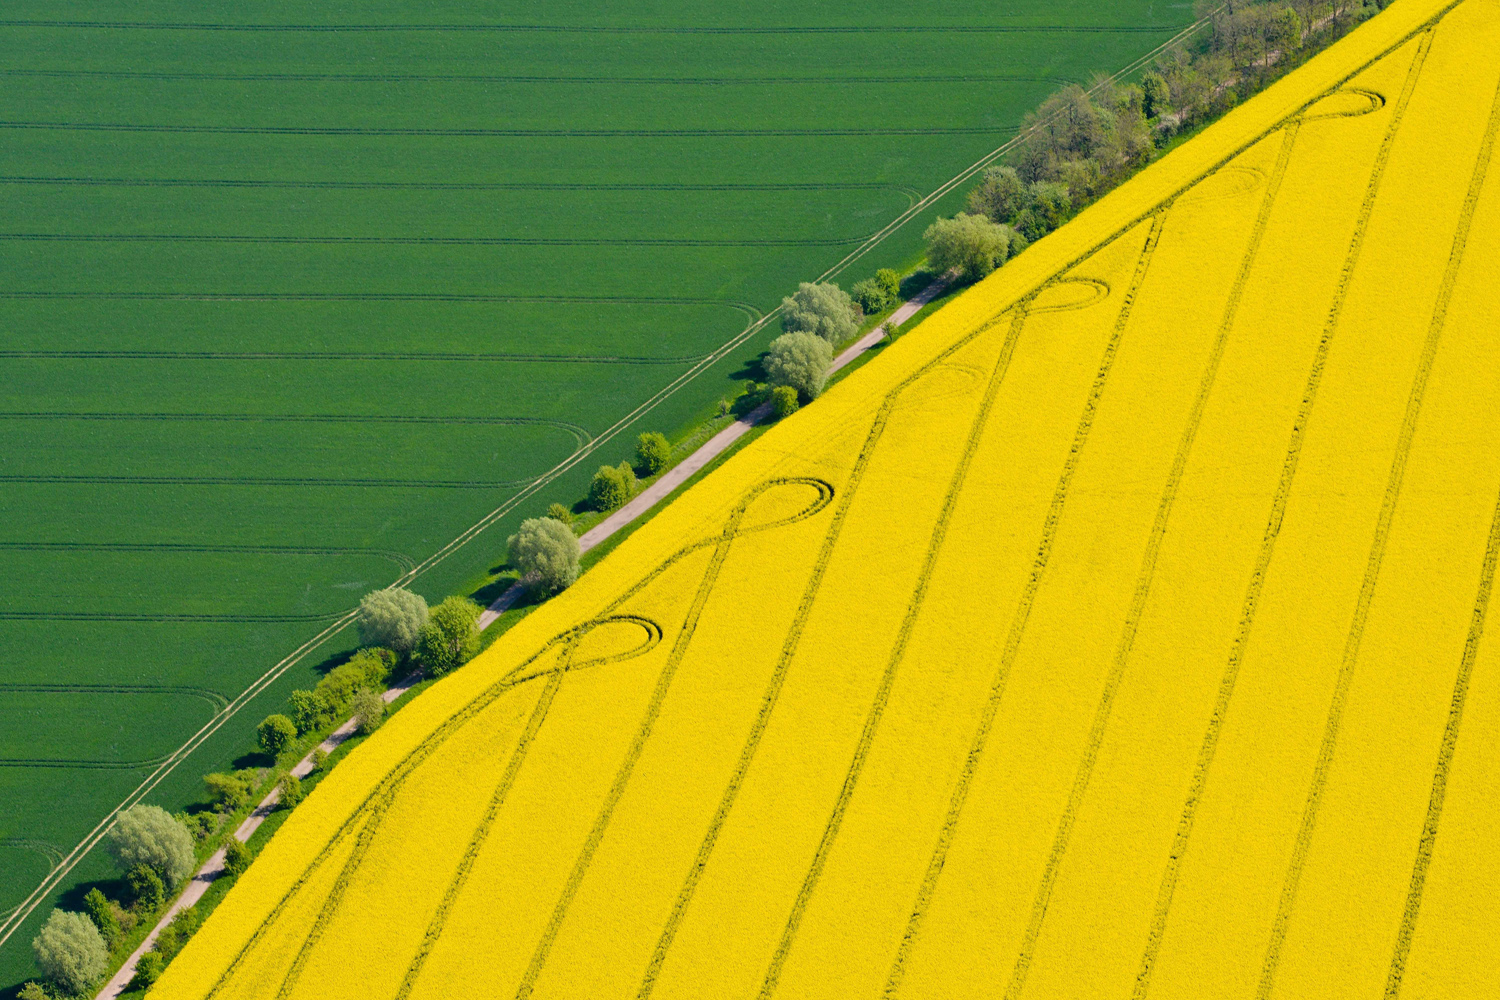 April 29, 2014. A View from a small aircraft onto a yellow rape field and a green corn field in the German state of Brandenburg near Muencheberg, Germany,